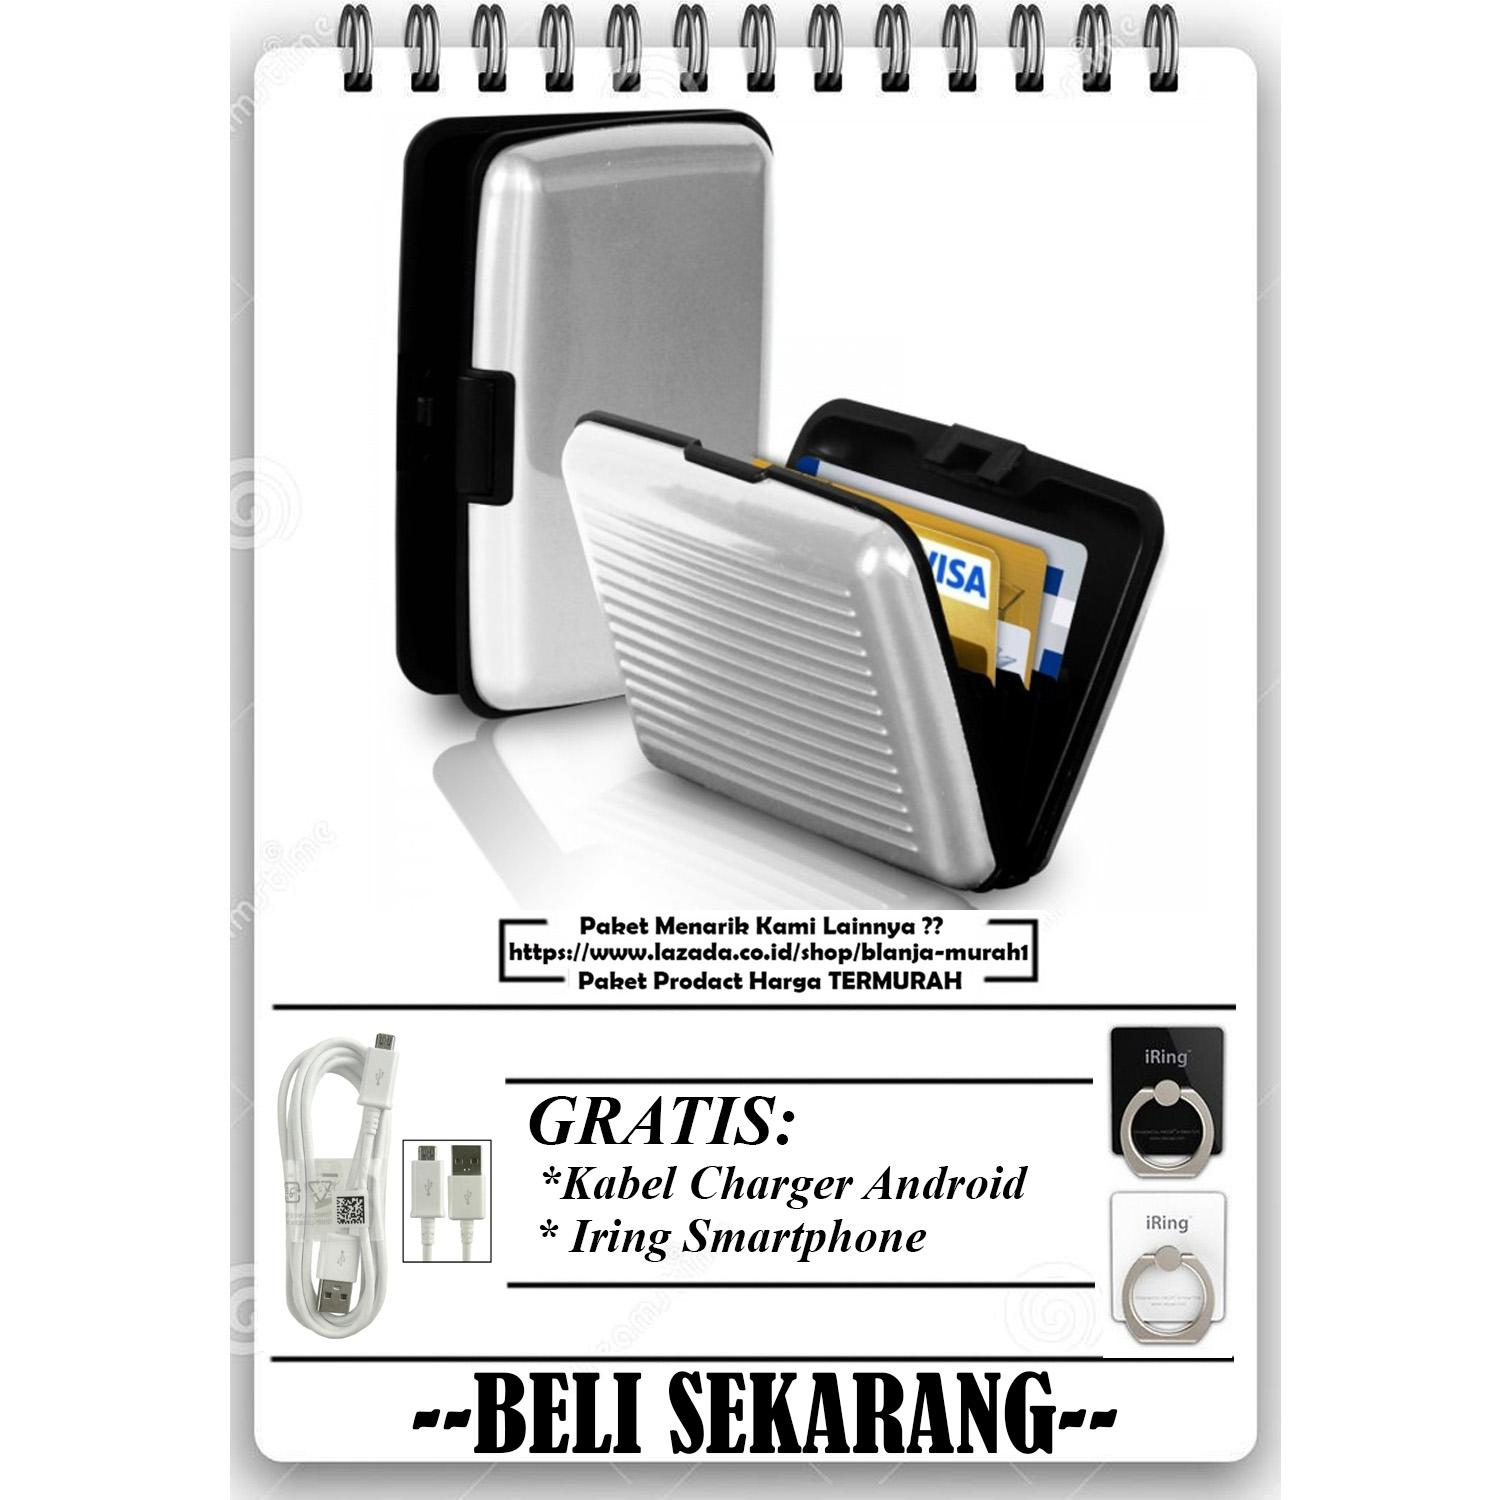 Dompet Kartu Nama / Aluma Wallet / Credit Card Holder / Organizer / Guard (kartu kredit, ATM) - White GRATIS Iring Stand HP & Kabel Charger Micro Android